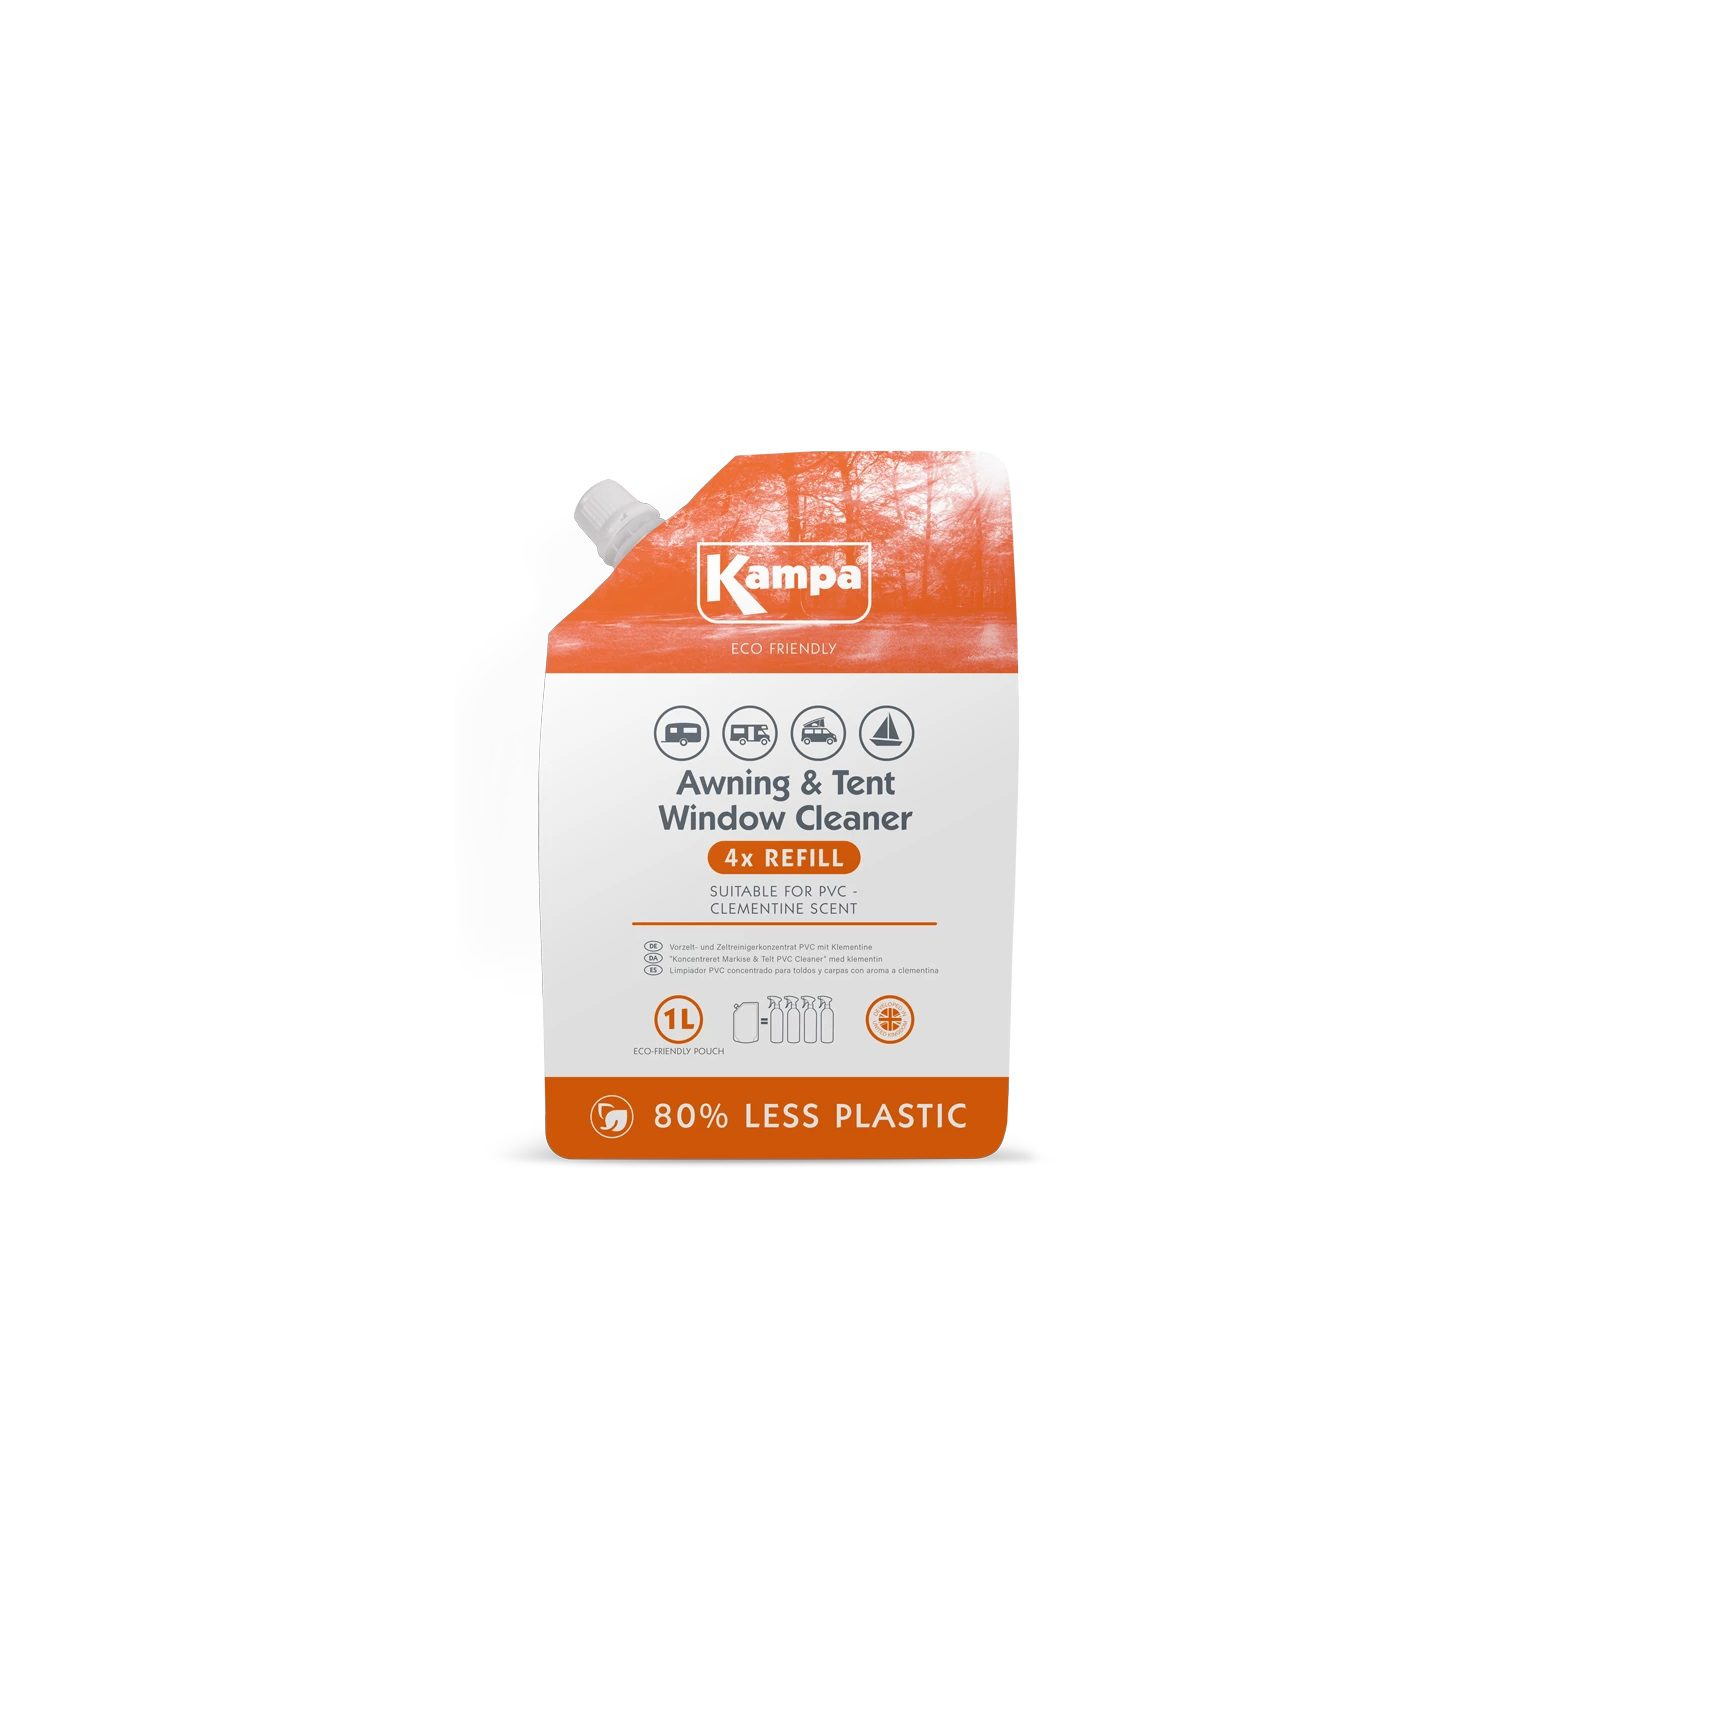 awning and tent window cleaner refill